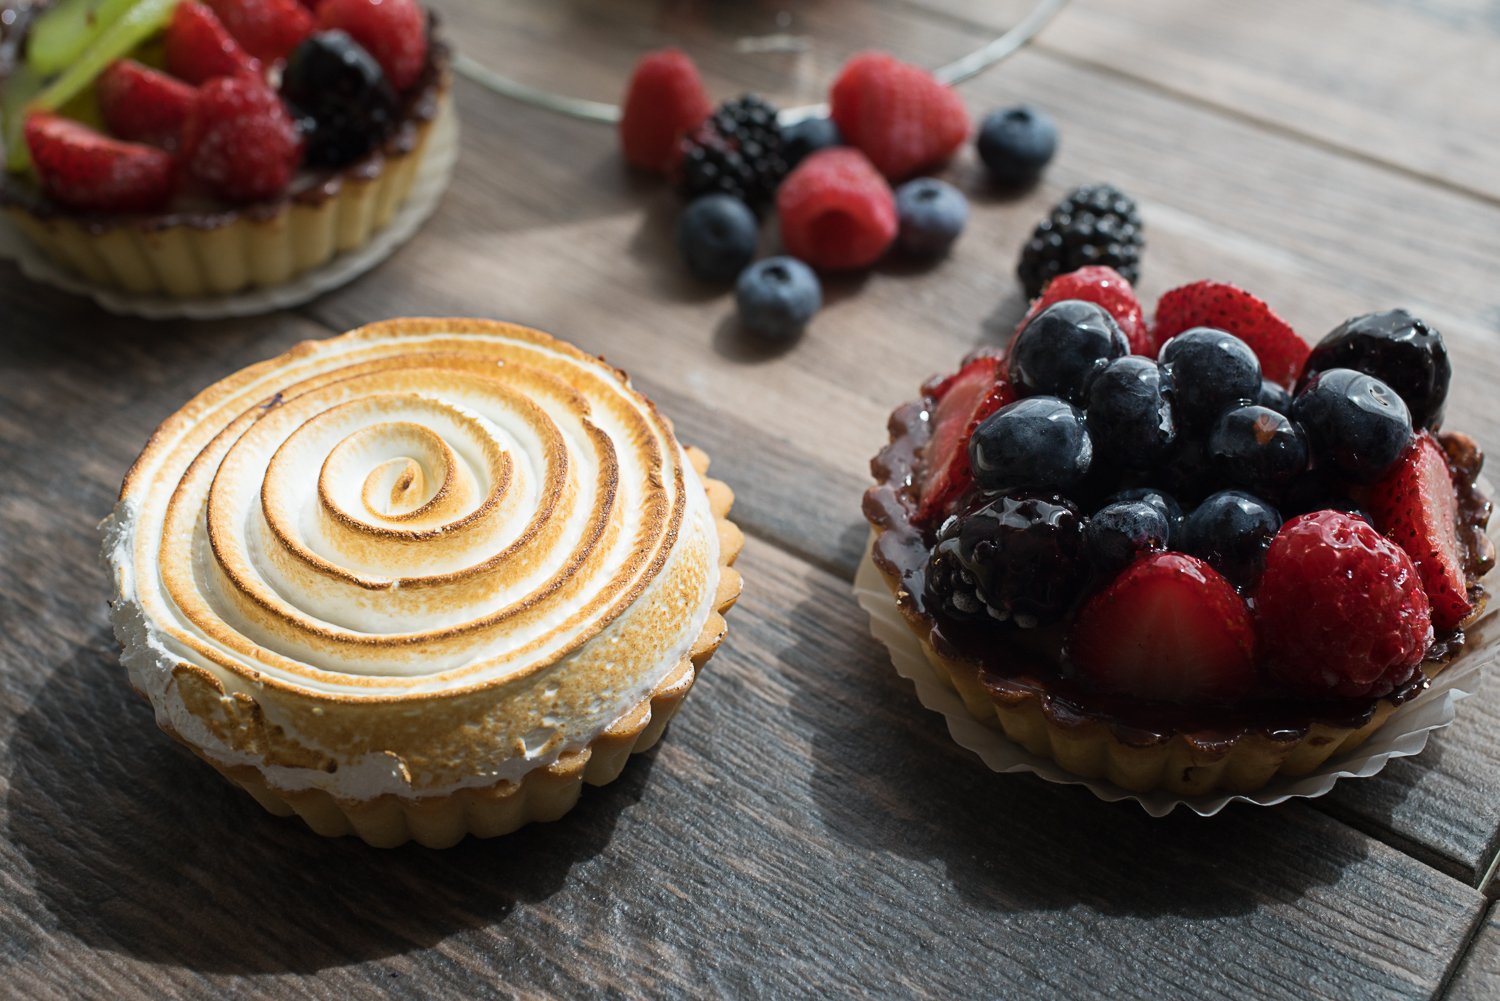 Delectable tarts made fresh daily